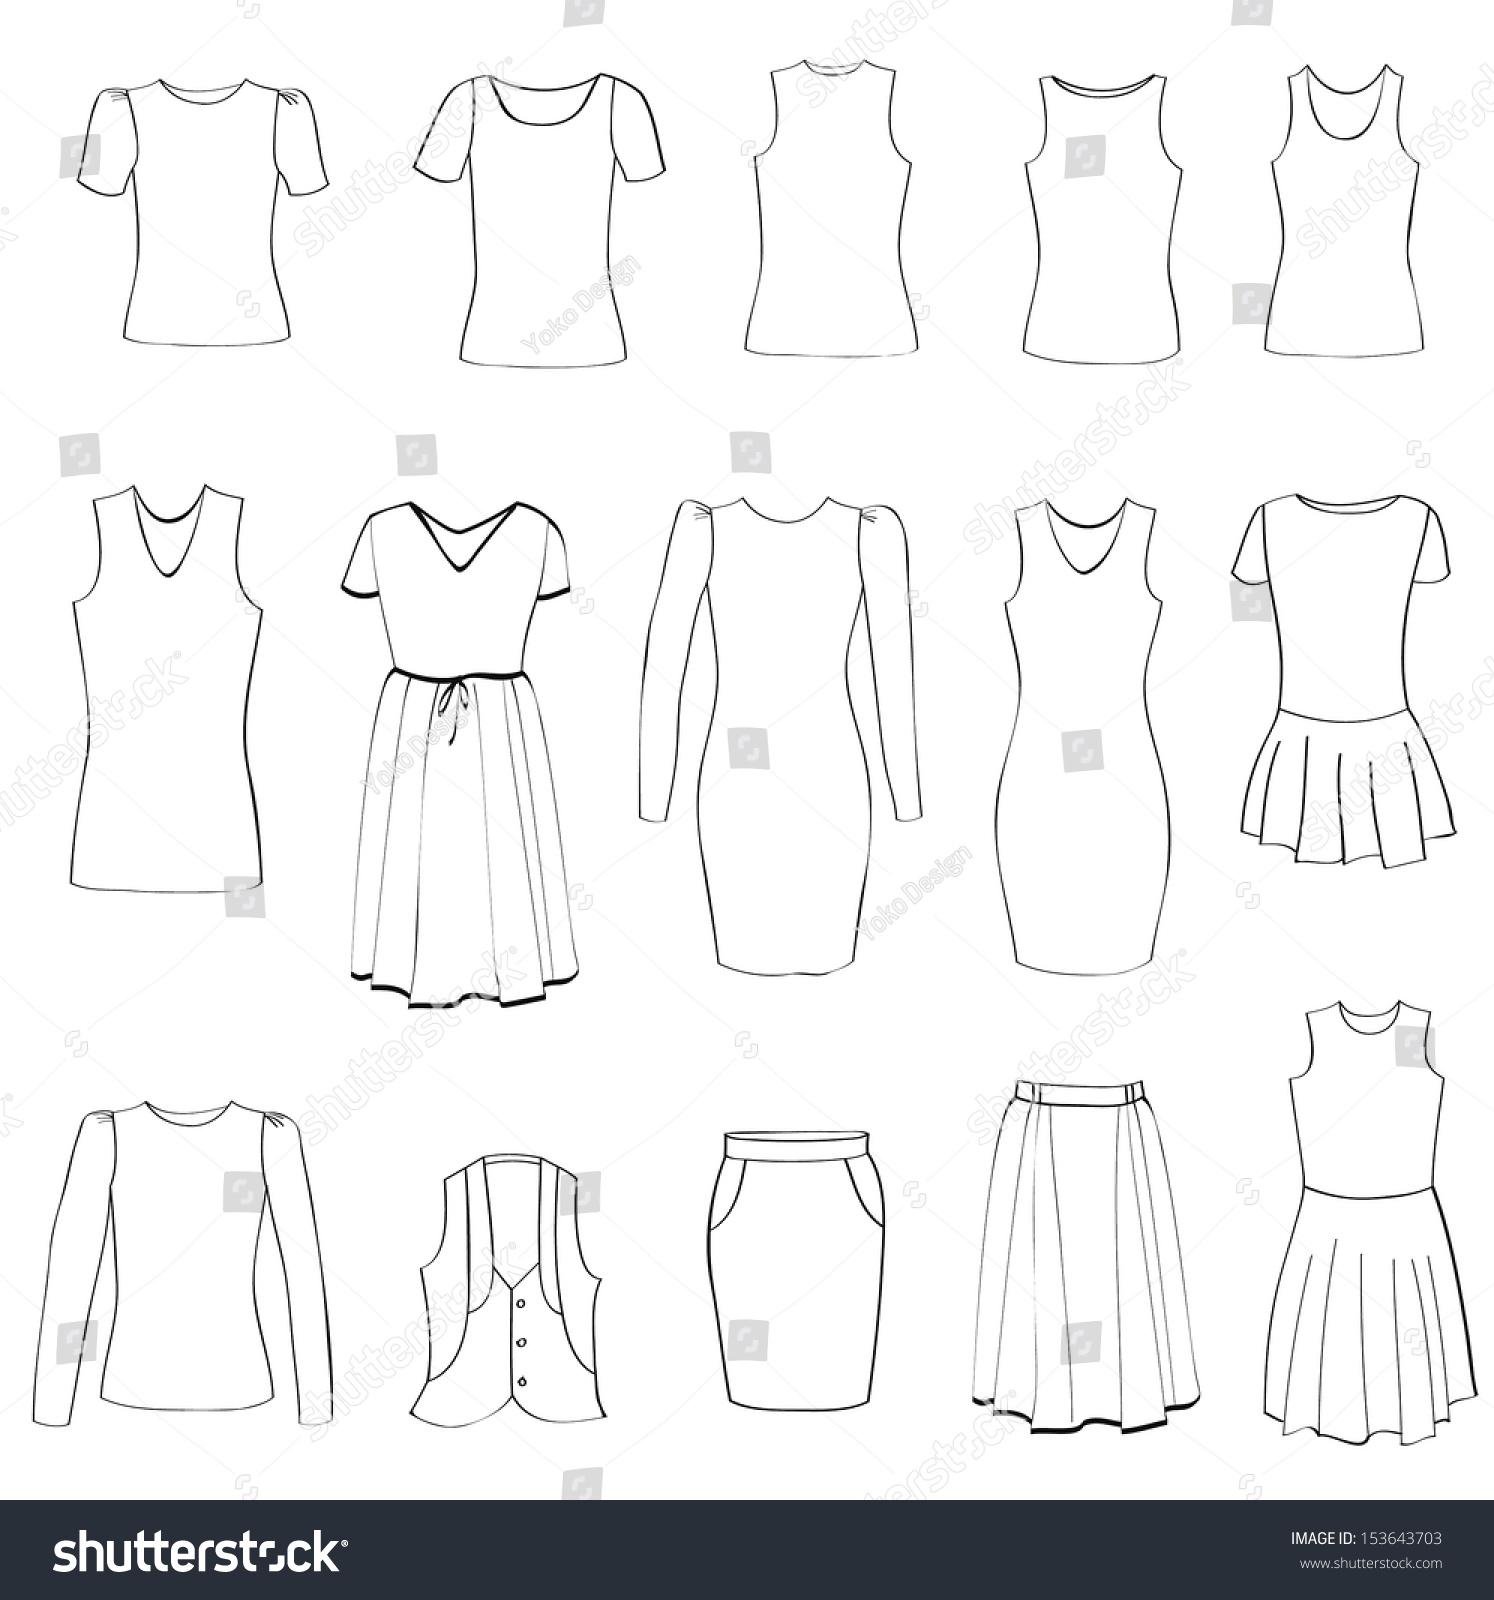 Line Silhouettes In Fashion Design : Fashion icons set female cloth collection stock vector